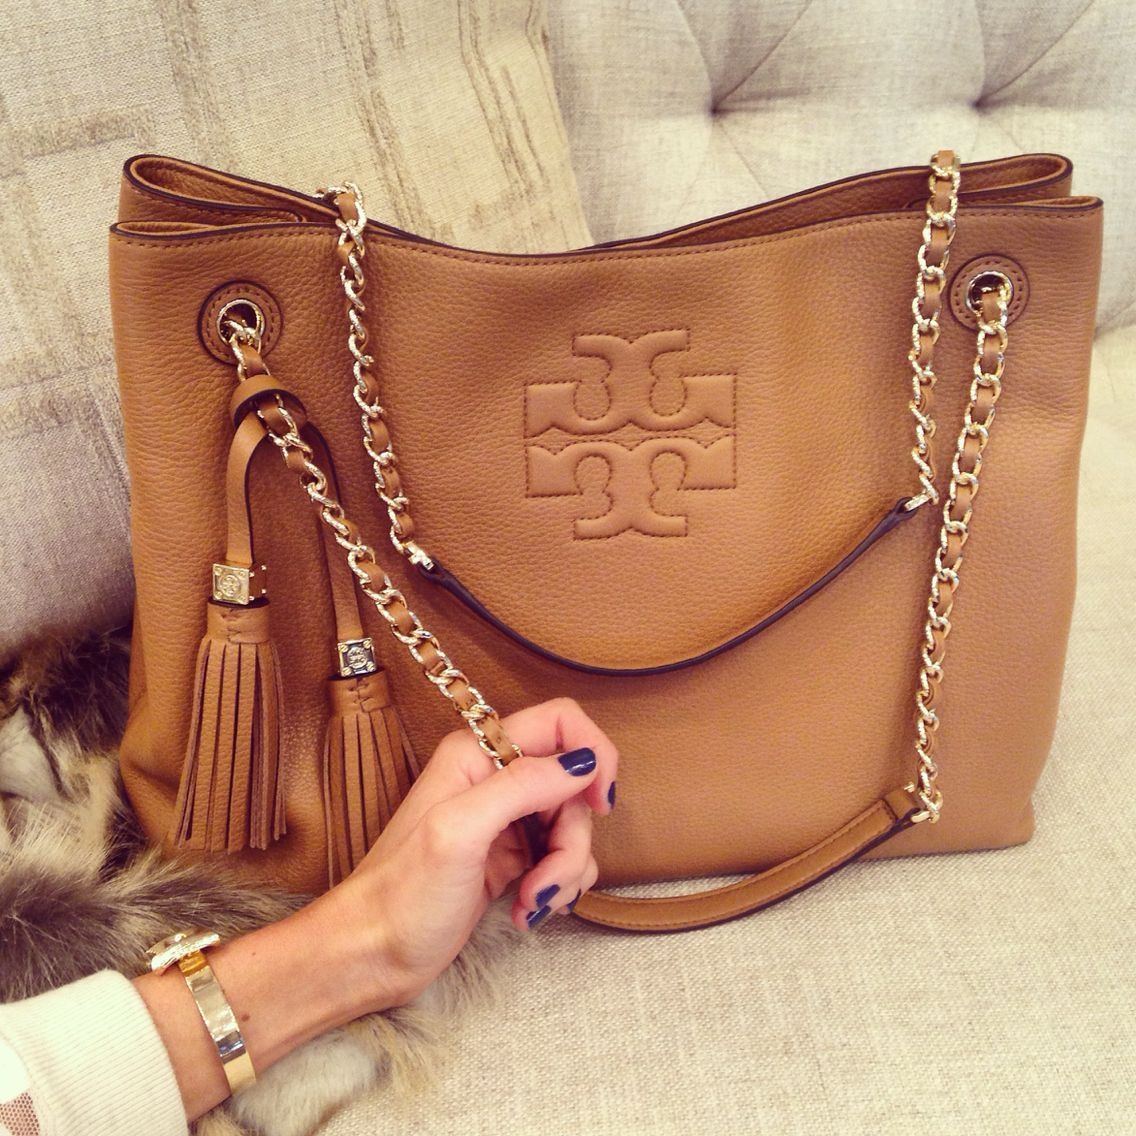 Tory Burch Thea Shoulder Tote A Need For The Collection More